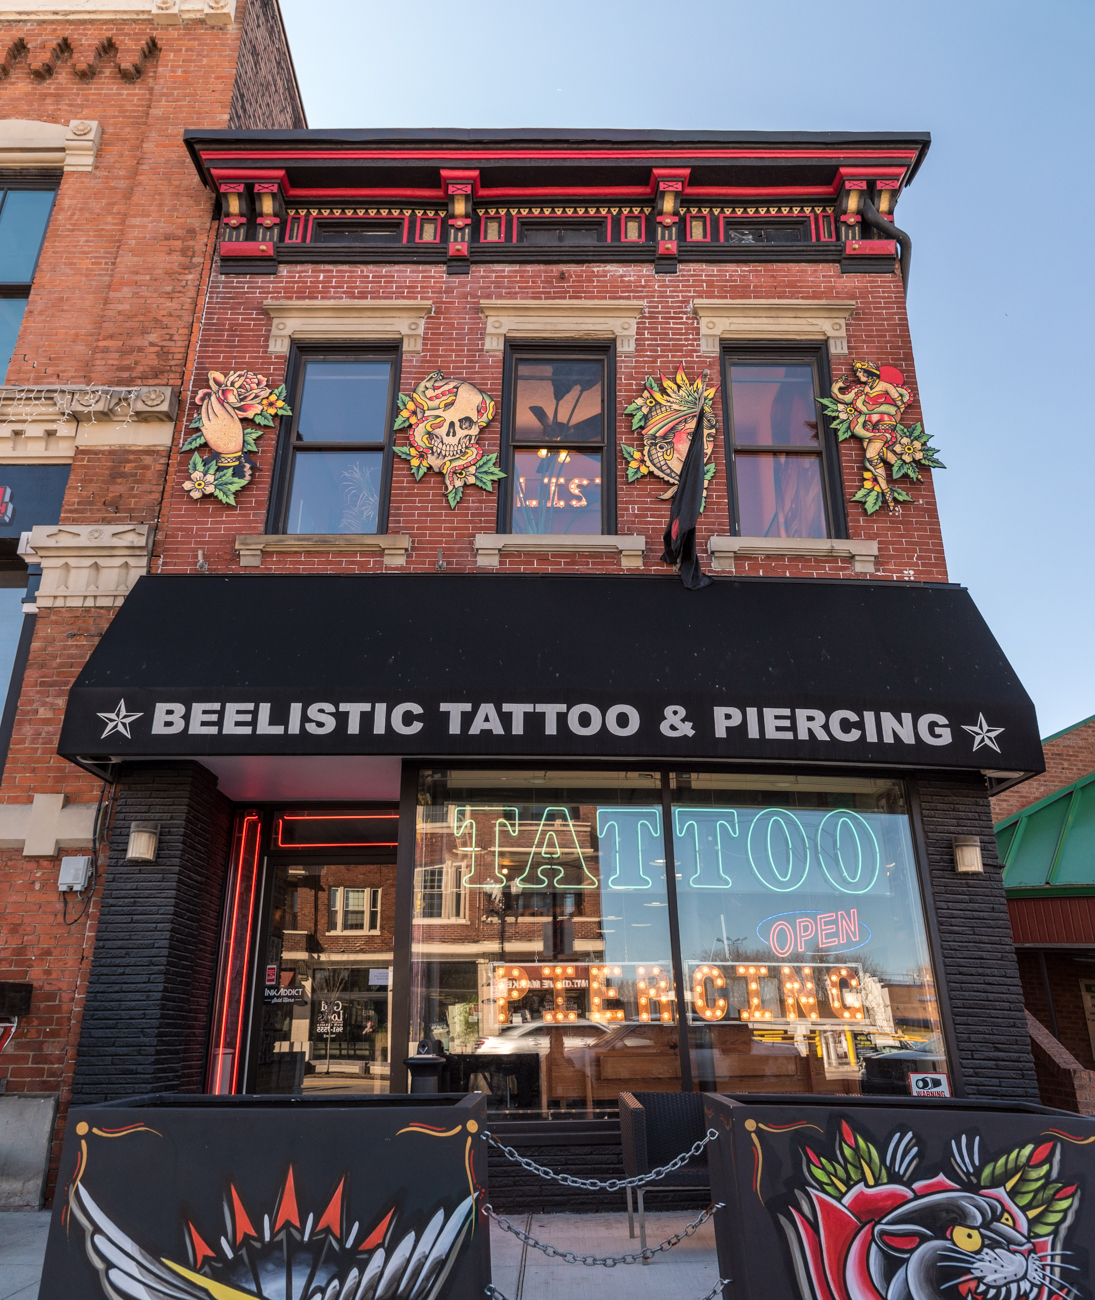 Beelistic Tattoo on Short Vine is the largest location for the well-known studio. The first floor is used for tattooing and the second level is reserved for piercings. ADDRESS: 2703 Vine Street, Cincinnati, OH 45219 / Image: Phil Armstrong, Cincinnati Refined // Published: 3.14.17